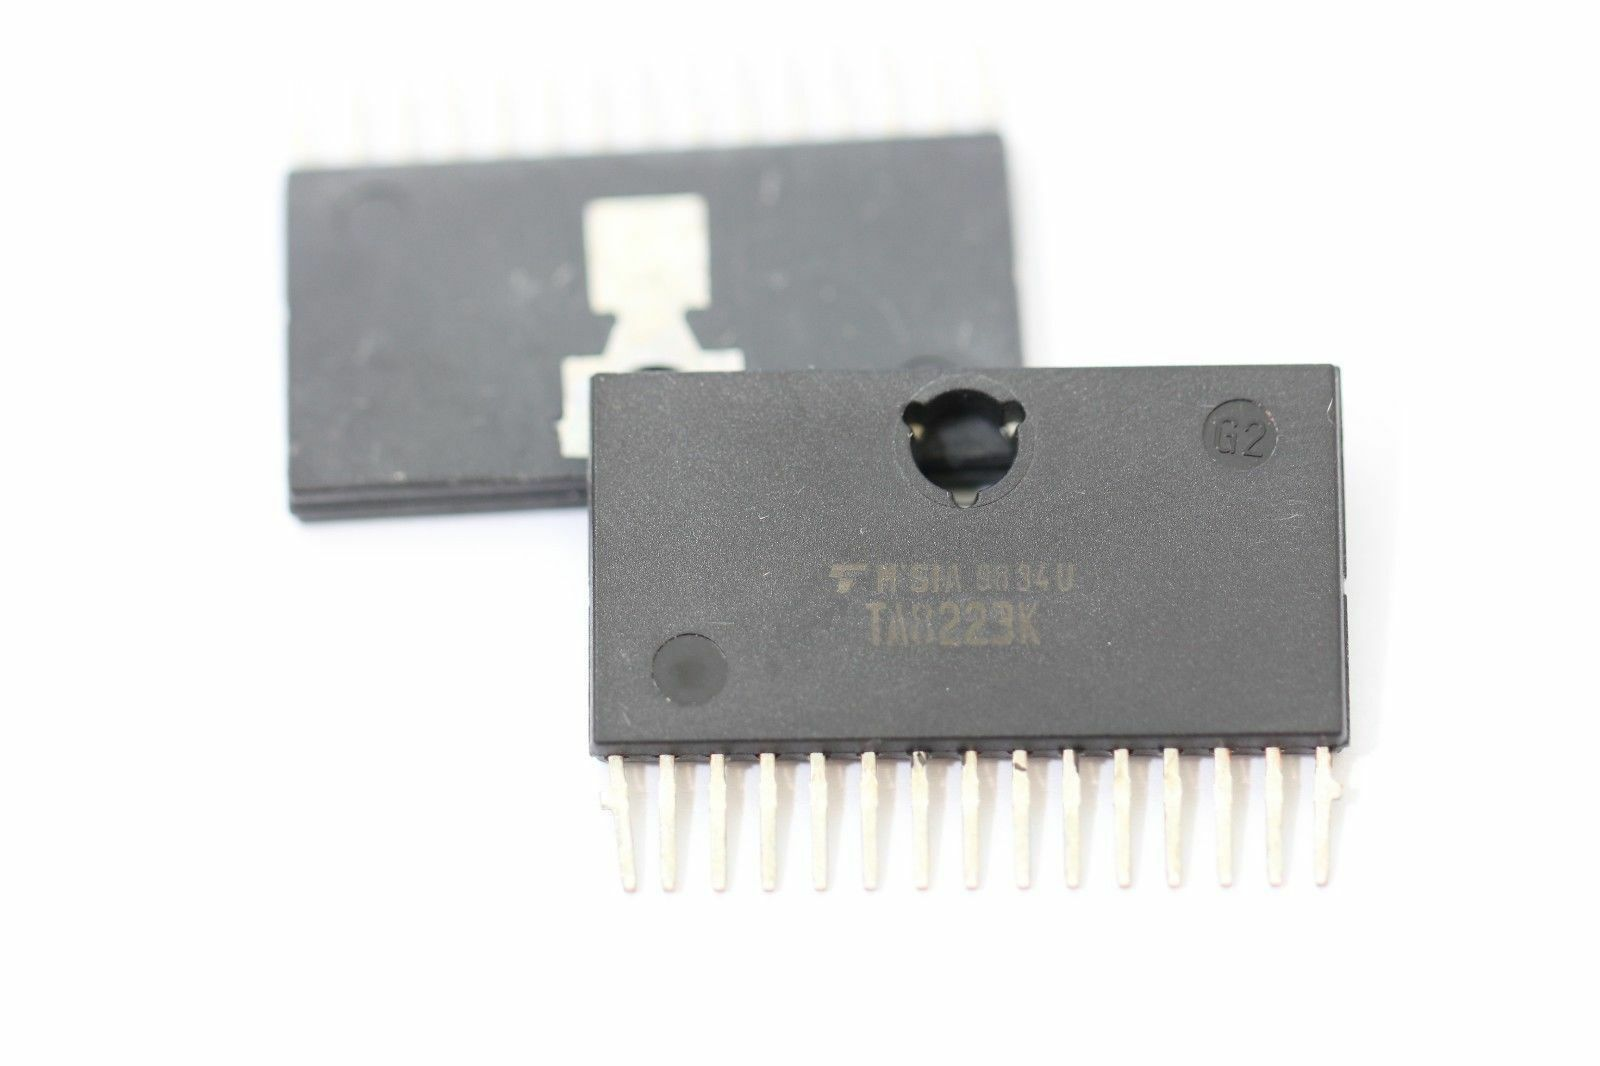 Ta8223k Integrated Circuit Case Sip15b Make Toshiba Ebay Lm358 Dip8 Norton Secured Powered By Verisign